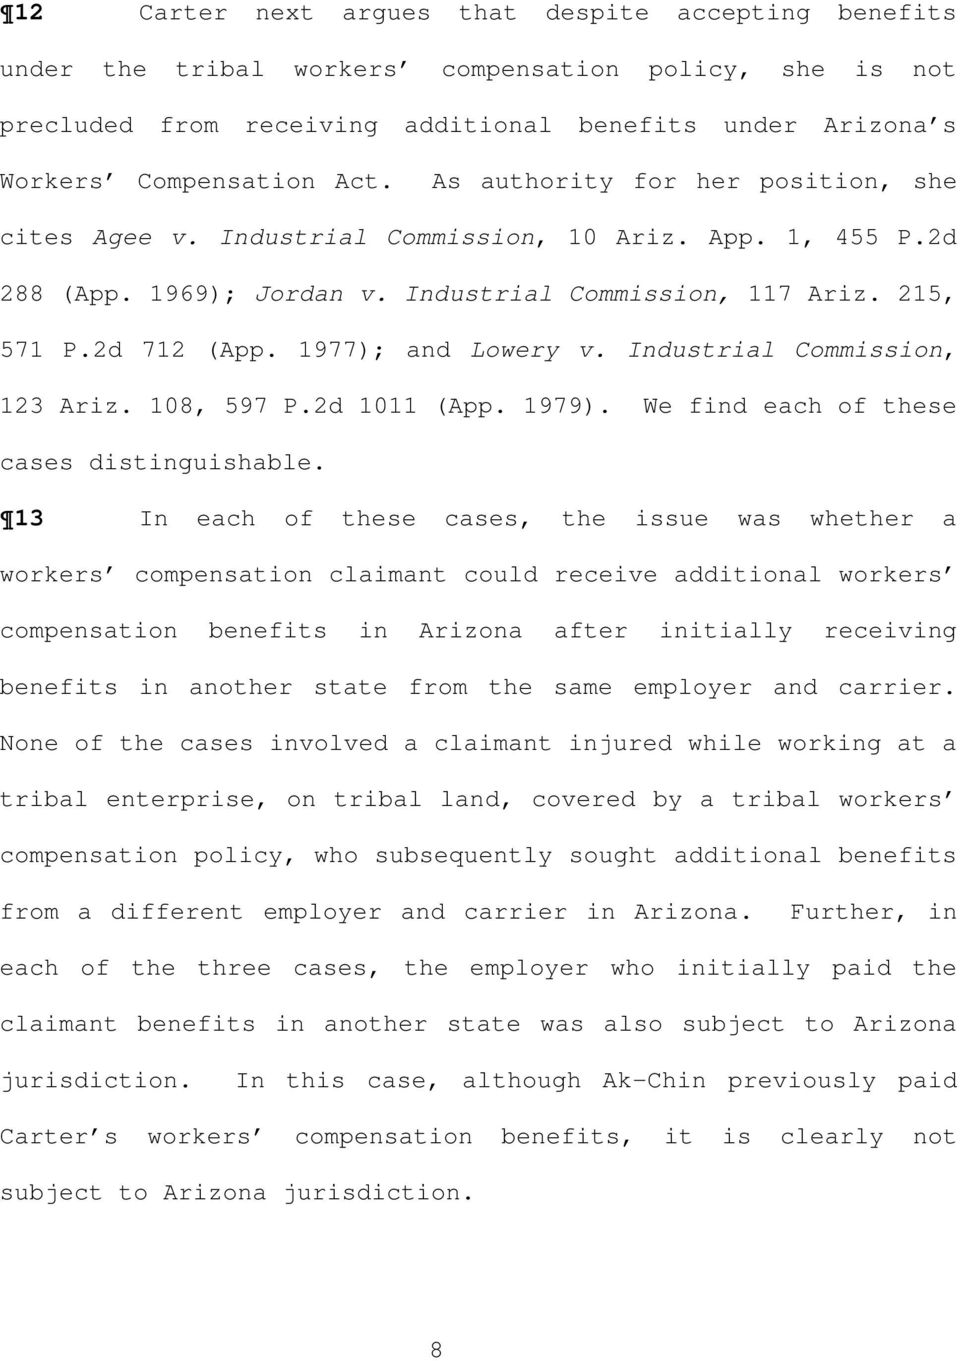 Industrial Commission, 123 Ariz. 108, 597 P.2d 1011 (App. 1979. We find each of these cases distinguishable.